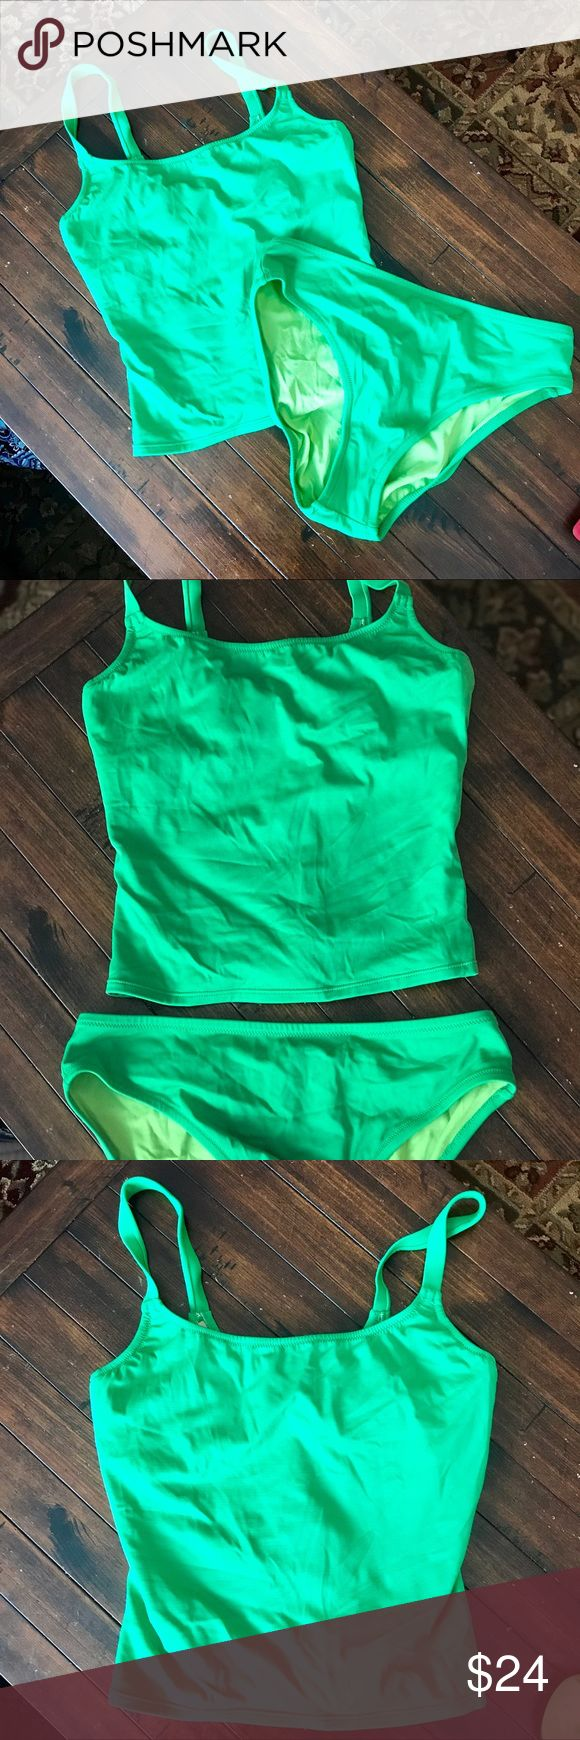 J. Crew Green Tankini Swimsuit A pop of color for your summer fun! Top is size 8 with D-cup underwire bra. Small tear on interior bra. Straps are not adjustable. Bottoms are high-cut, size Large. EUC except as noted.  Fast same or next business day shipping! From a dog-friendly, nonsmoking home. Offers welcomed! Bundle for a private discount! J. Crew Swim